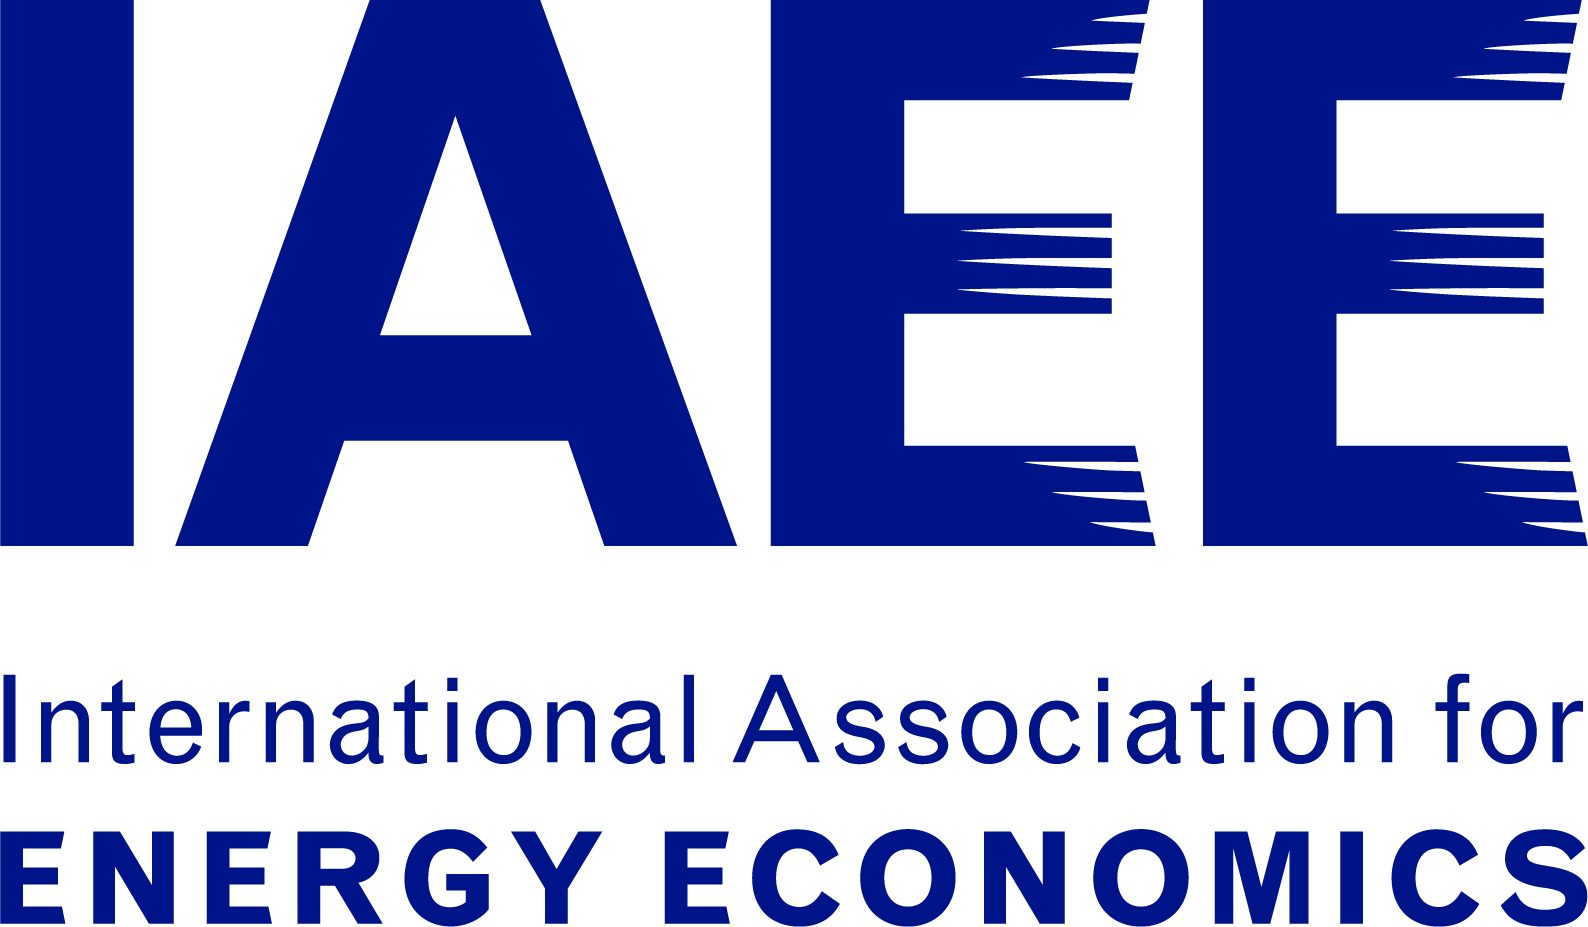 International Association for Energy Economics